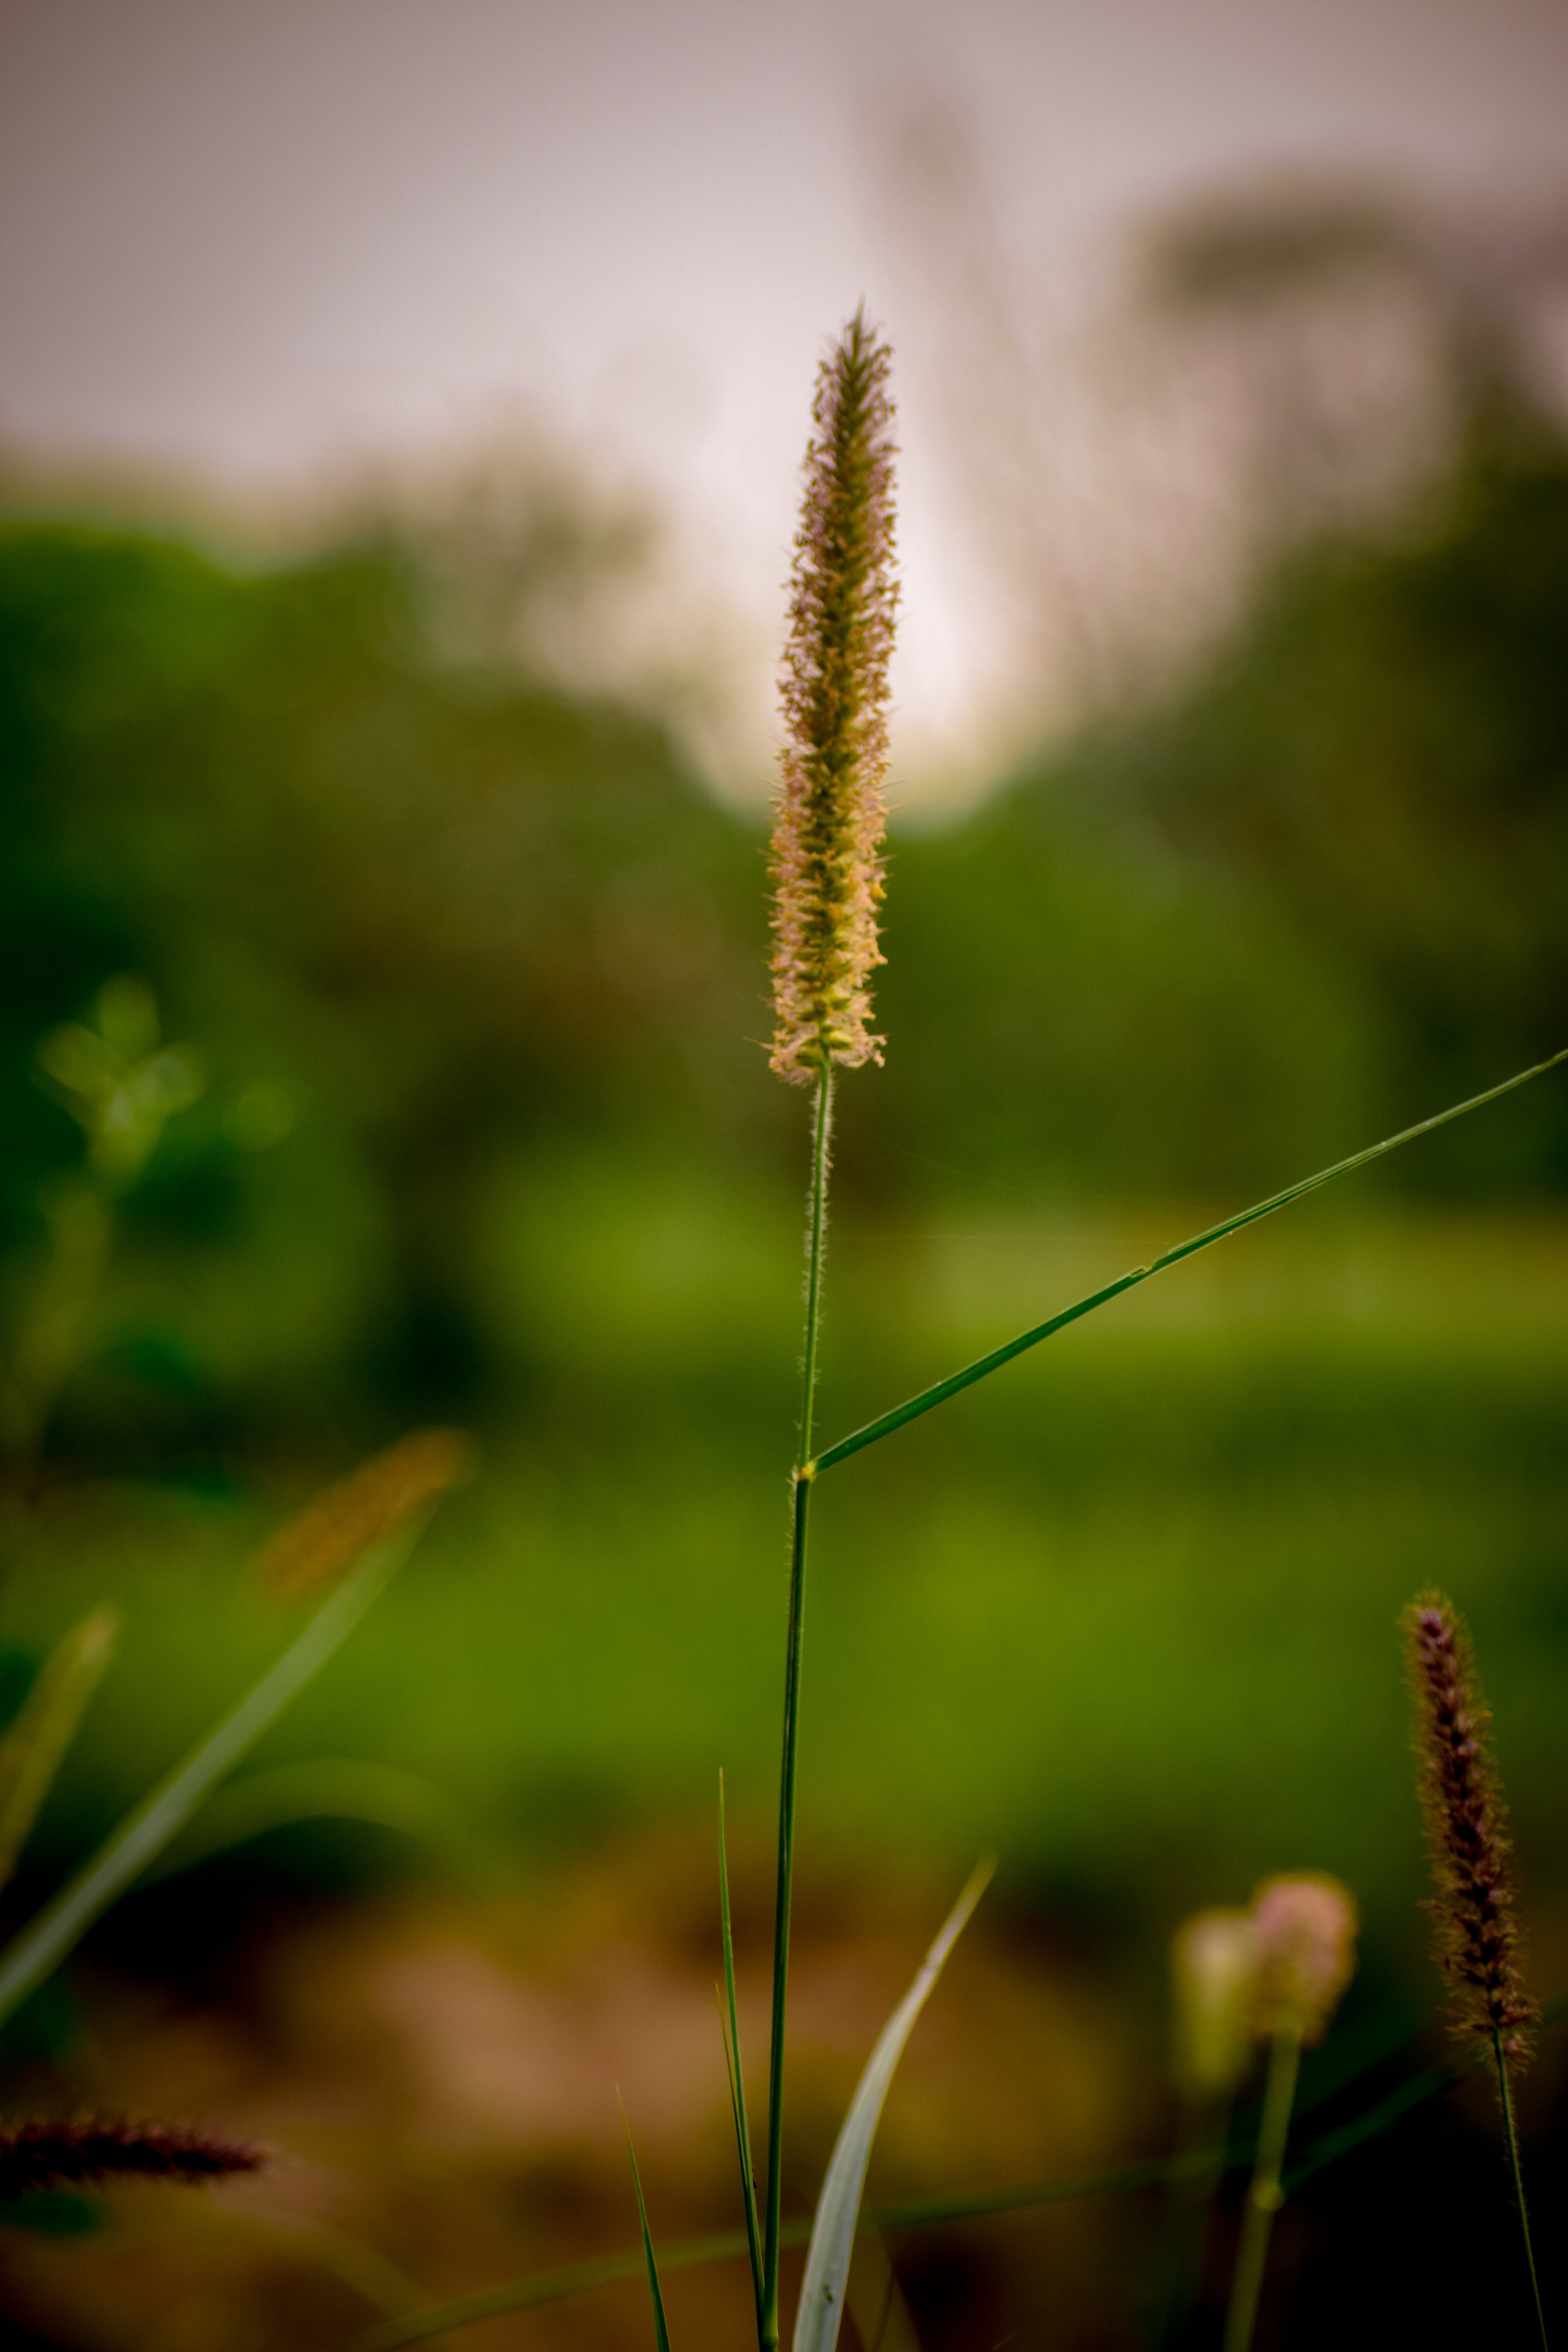 Free stock photo of grass, green, nature park, nature photography